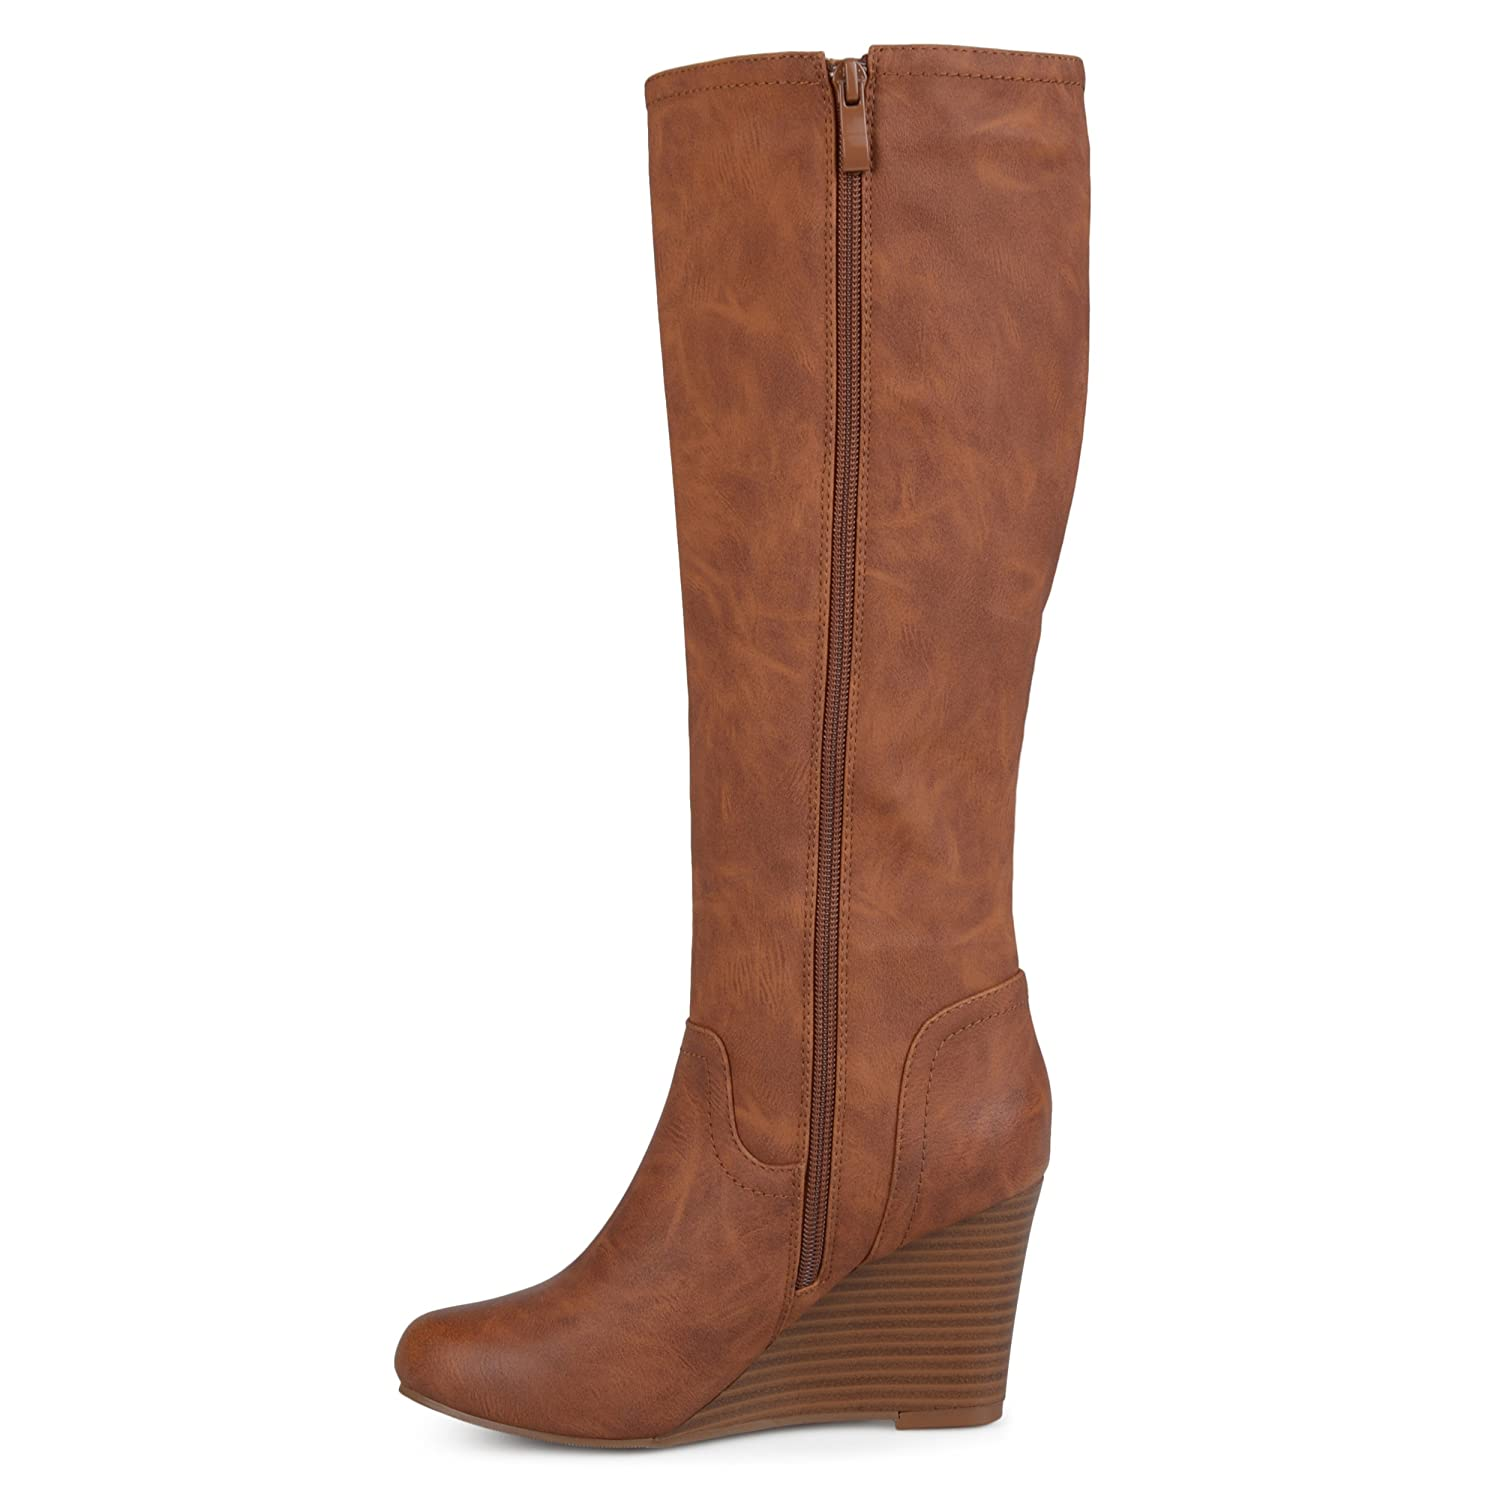 7a7ac16a6356 Amazon.com | Journee Collection Womens Regular and Wide Calf Round Toe  Mid-Calf Wedge Boots | Mid-Calf